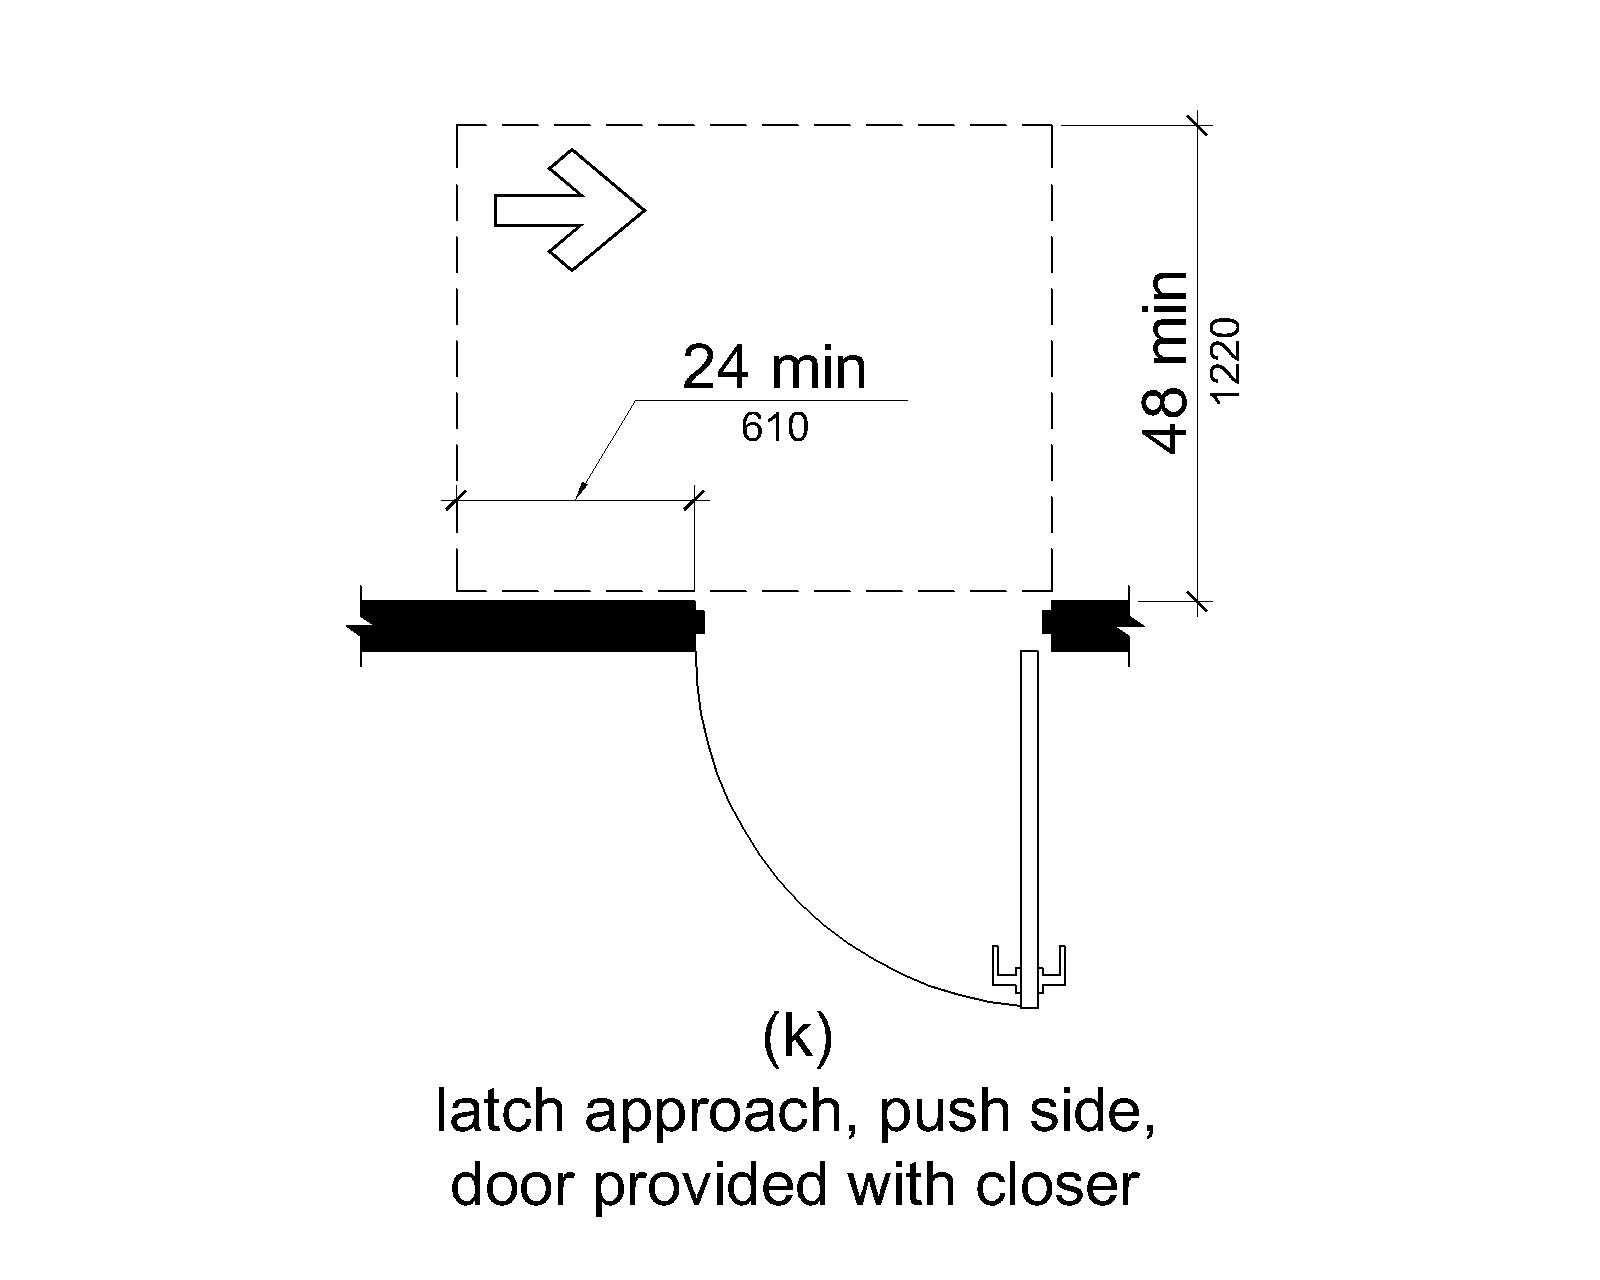 (k) On the push side, maneuvering space extends 24 inches (560 mm) from the latch side of the doorway and 48 inches (1220 mm) minimum perpendicular to the doorway if the door has both a closer and a latch.